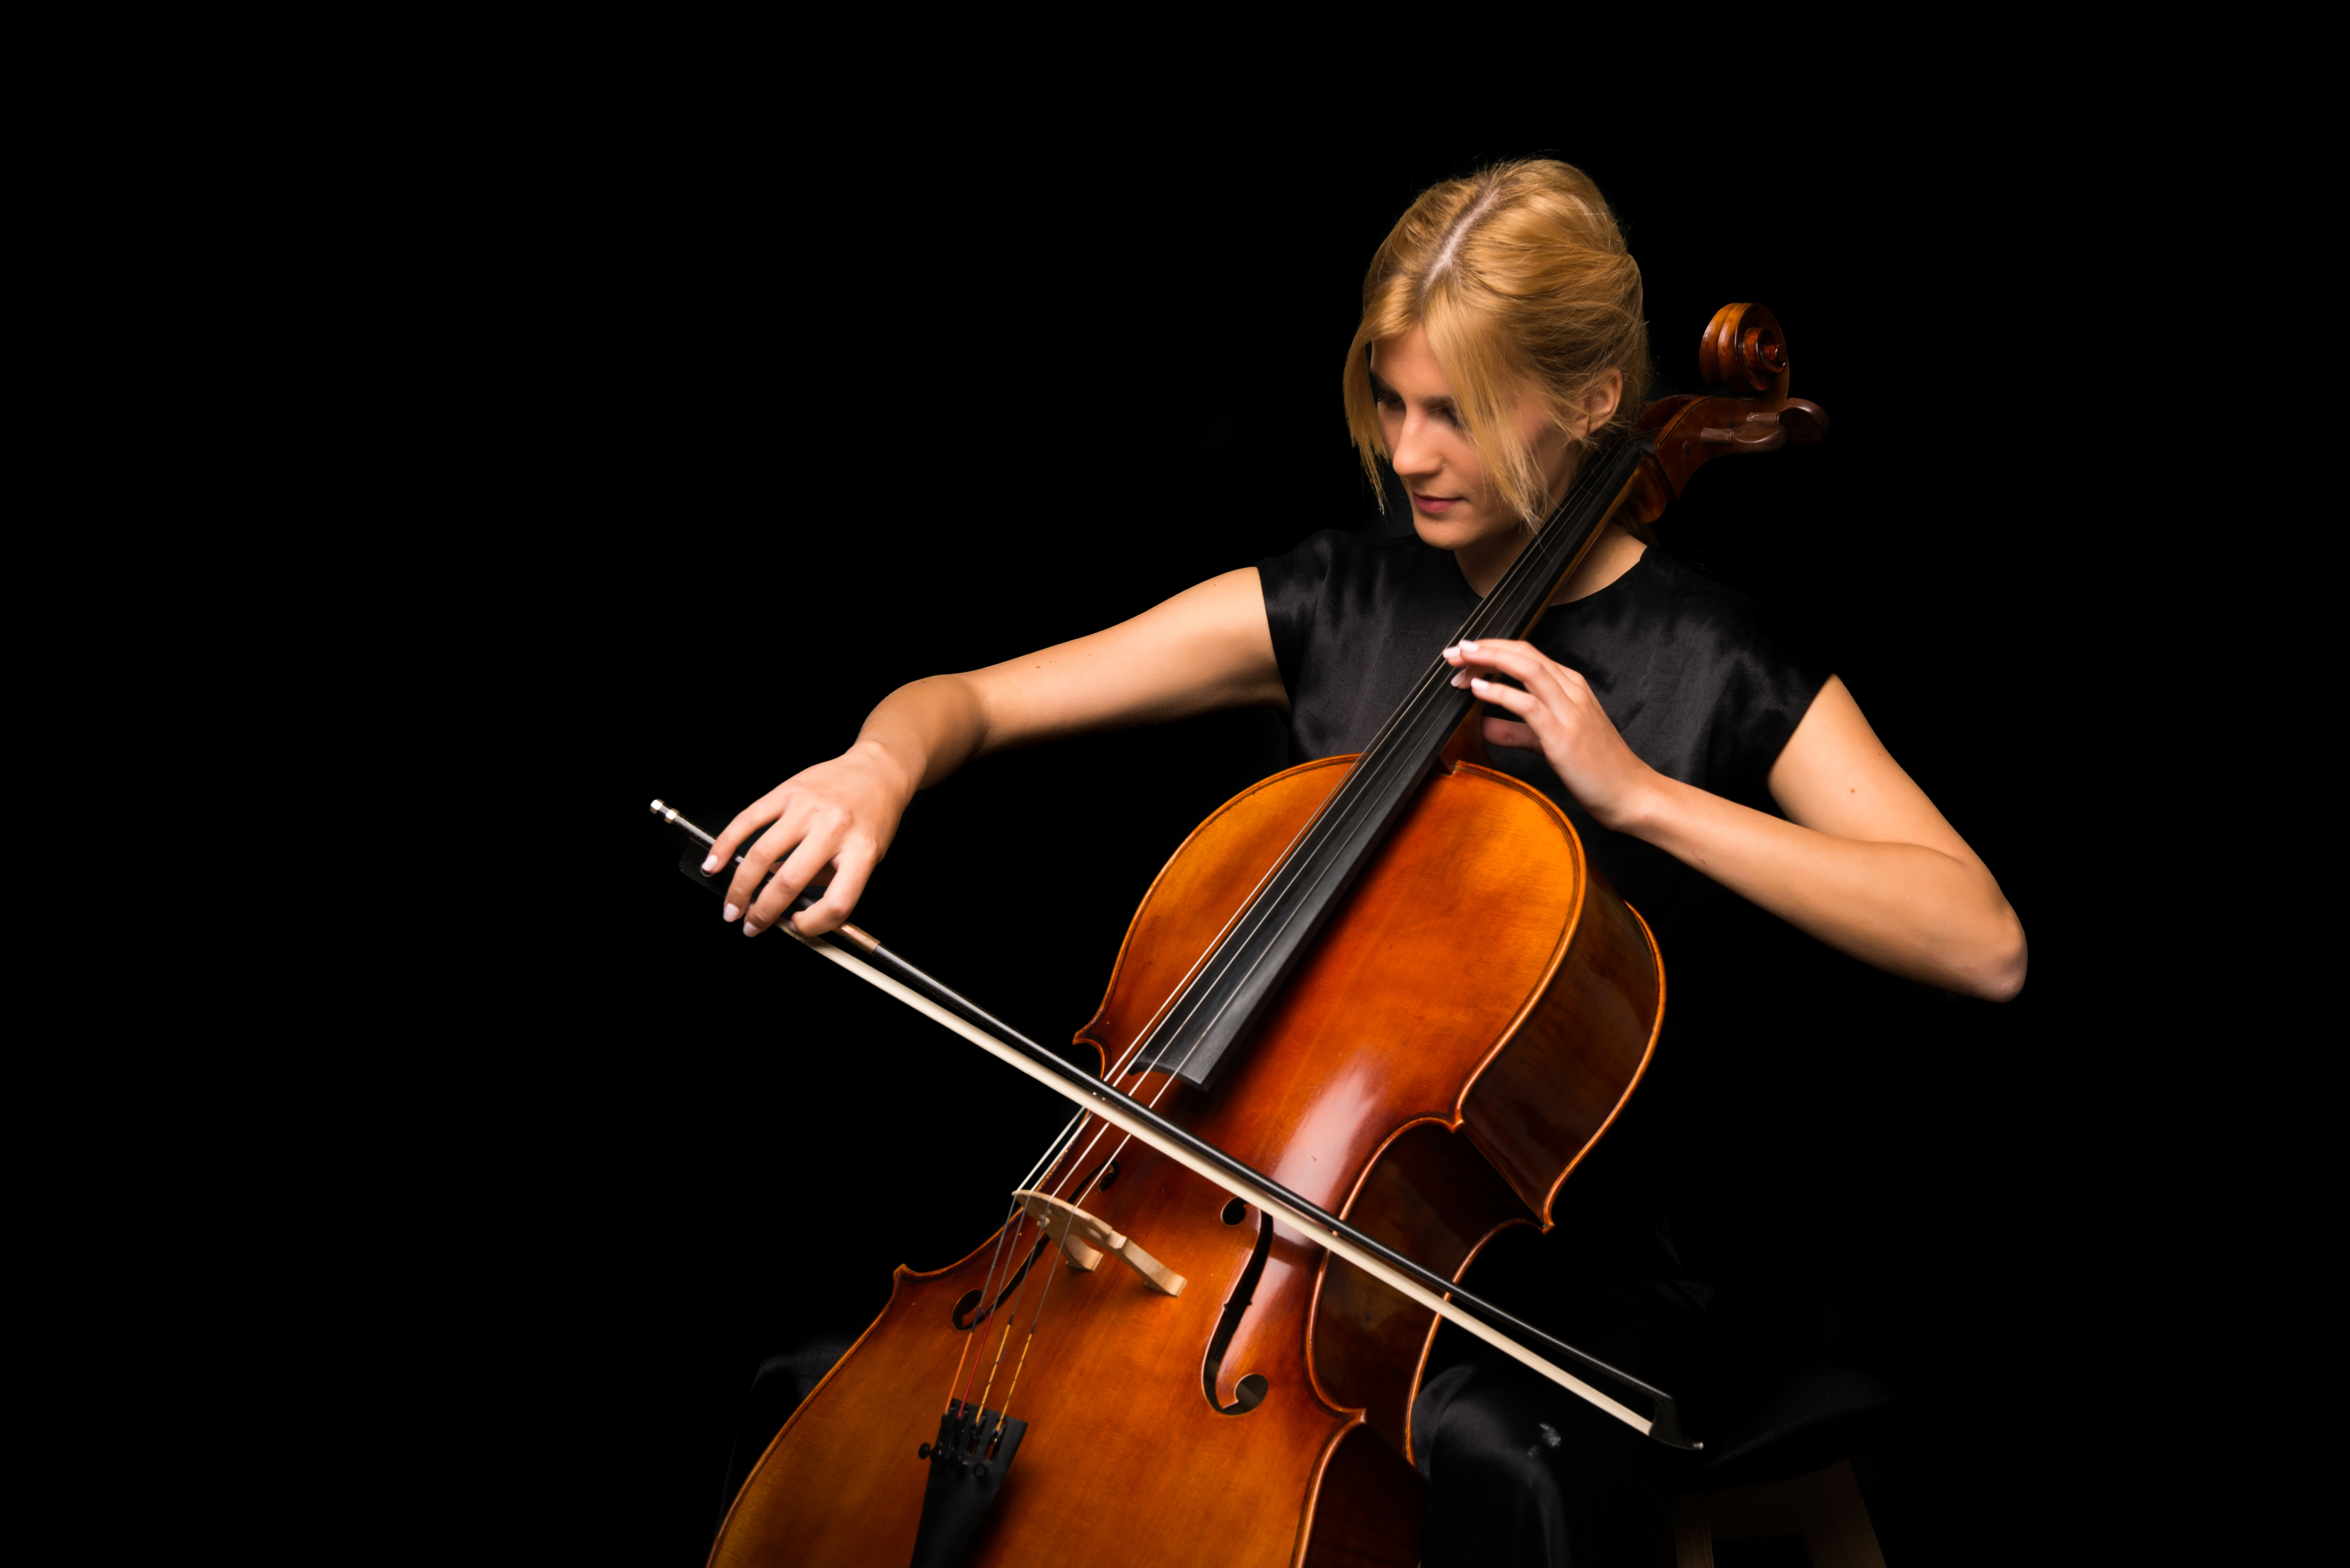 Young girl playing the cello on isolated black background